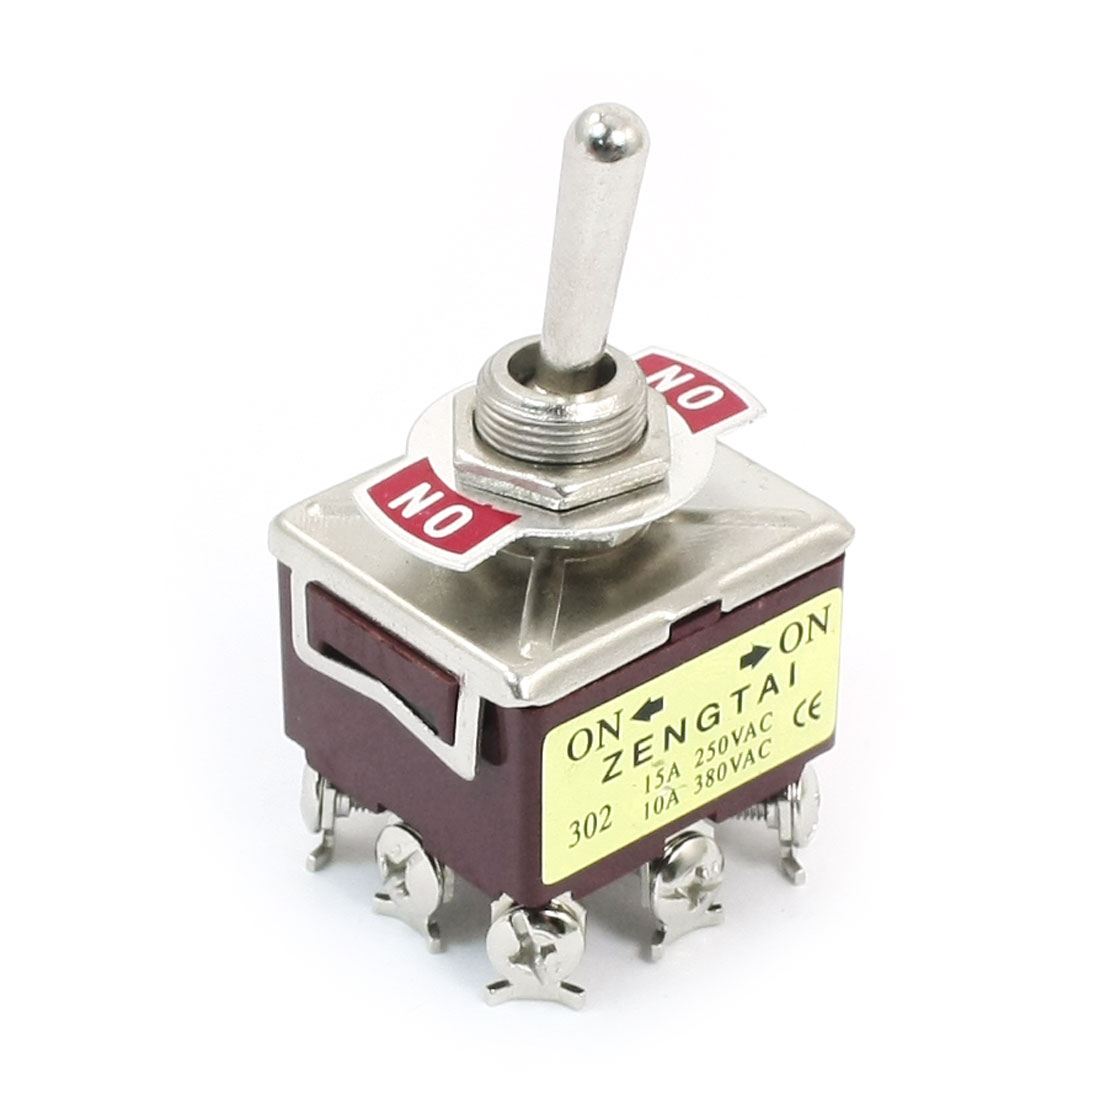 ON-ON 3PDT 9 Screw Terminal Rocker Type Toggle Switch AC 380V 10A Brick Red